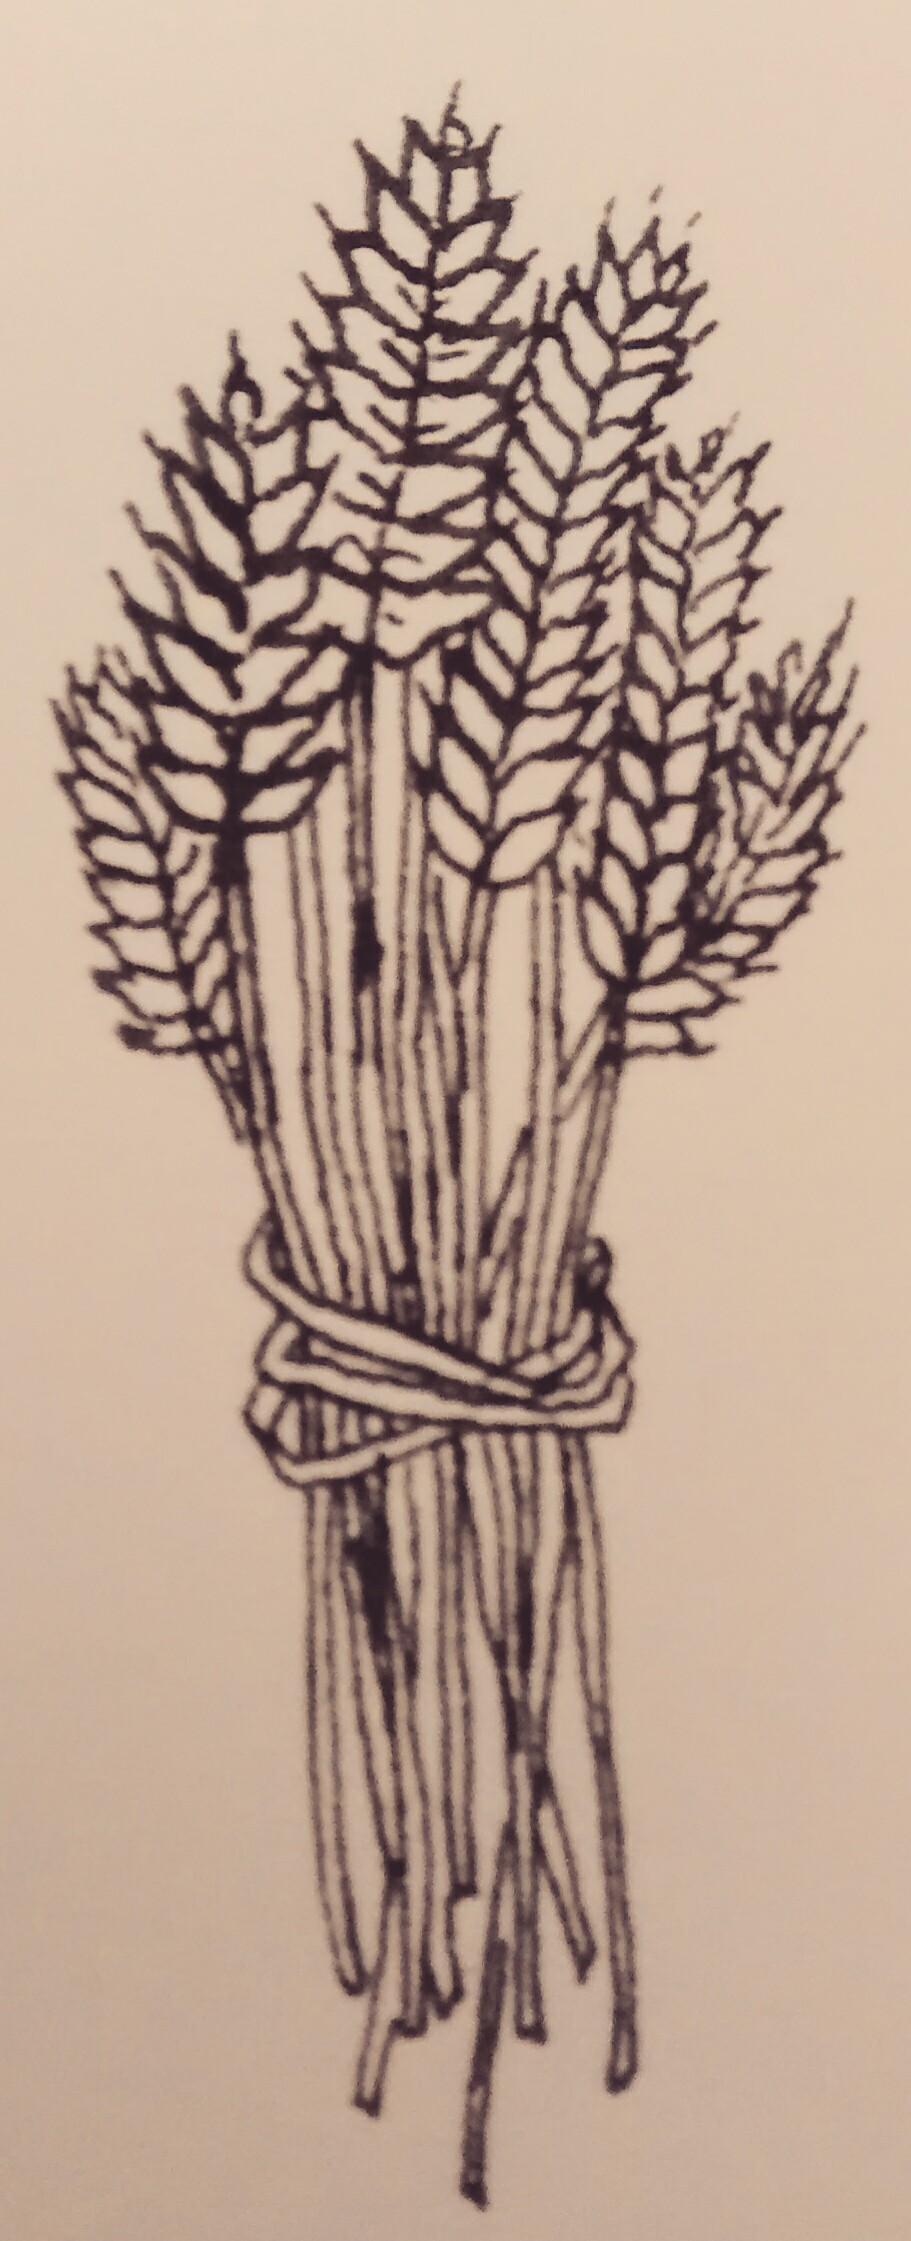 Wheat bundle clipart image download wheat sheaf clipart | Clipart Panda - Free Clipart Images image download